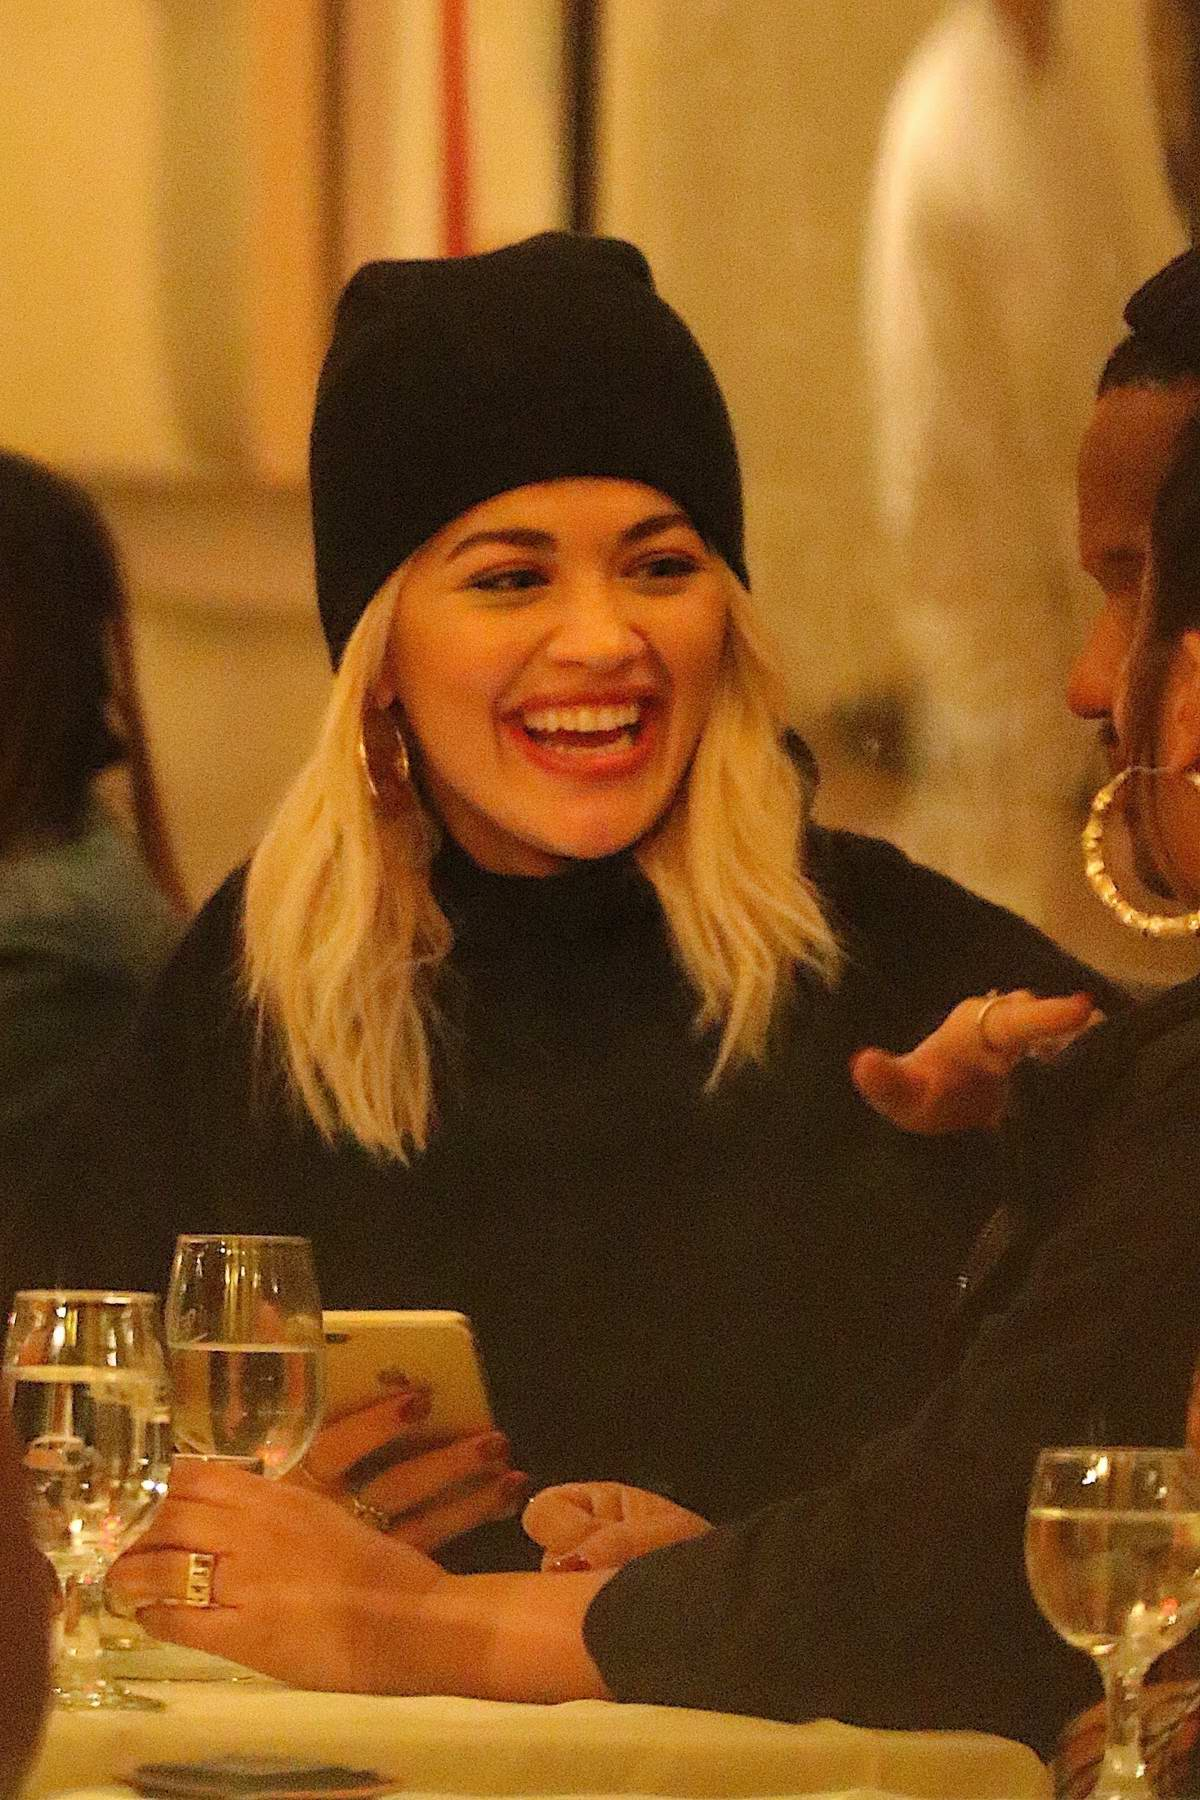 Rita Ora enjoys dinner with her friends at Cipriani Wall Street in New York City